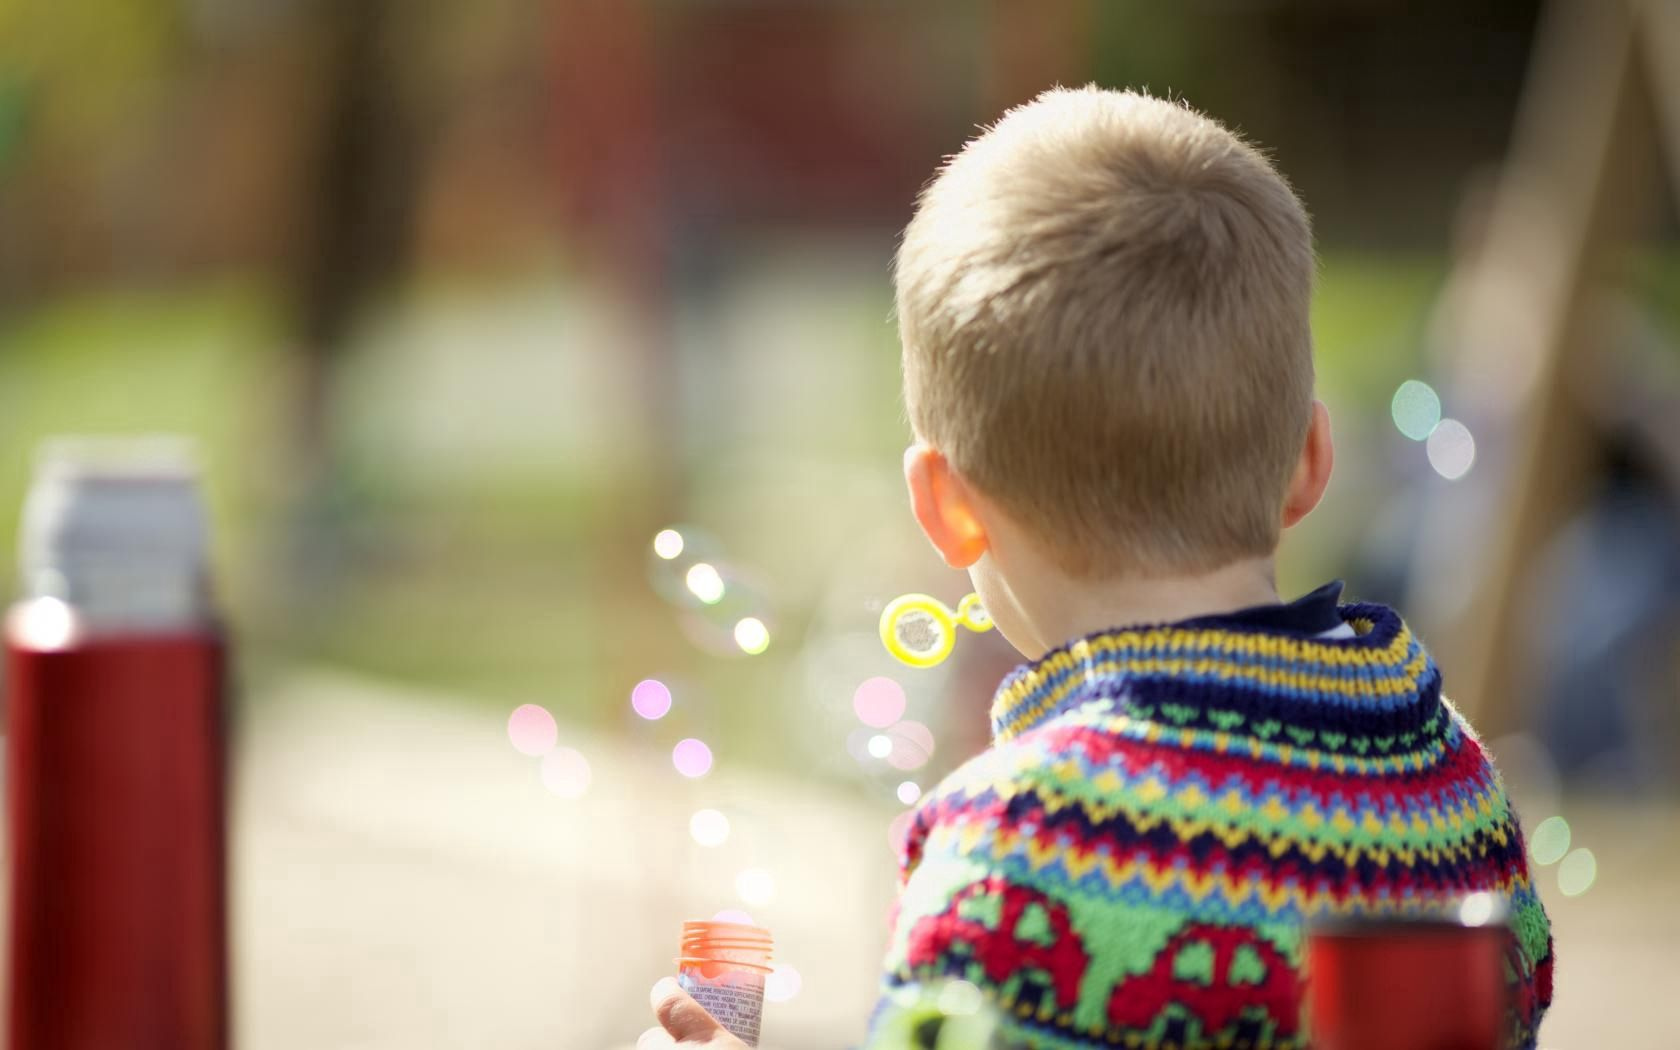 112639 download wallpaper Miscellanea, Miscellaneous, Child, Boy, Bubble, Bubbles screensavers and pictures for free